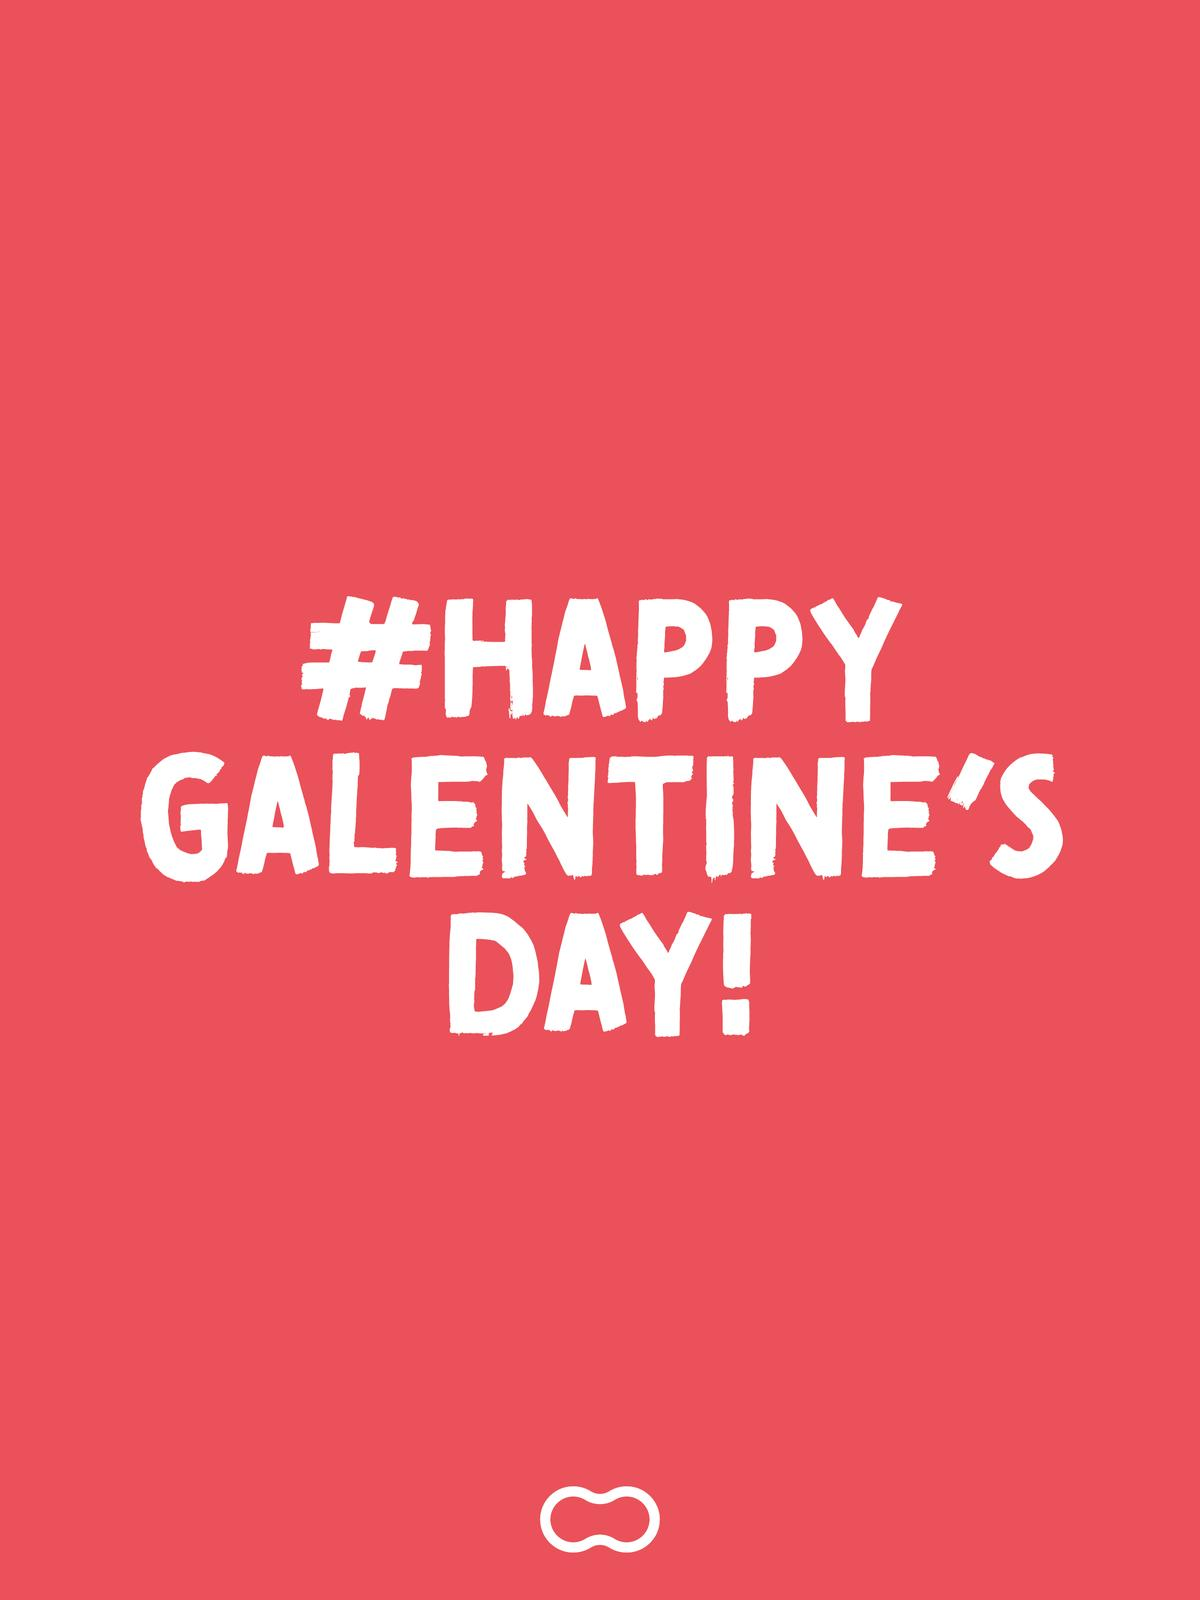 Galentine's day virtual card